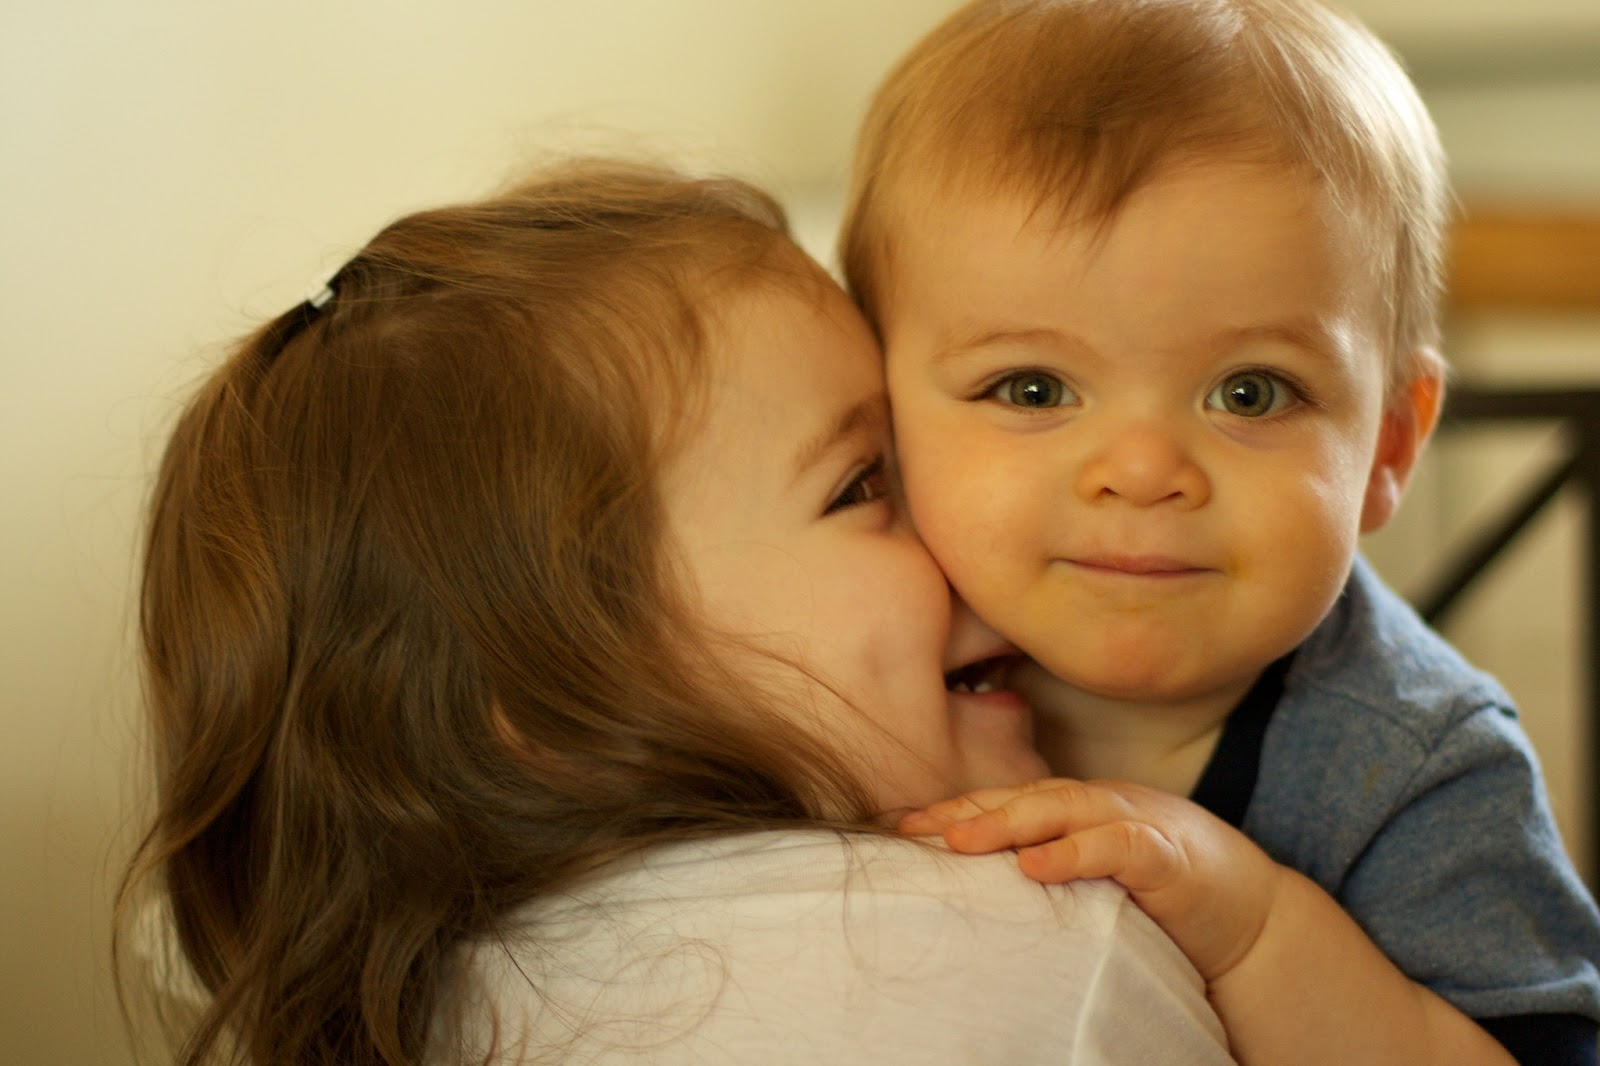 Love Couple Wallpaper Hd 1080p Free Download 53 Find: HD Wallpapers Fine: Baby Couple Kissing High Resolution Hd